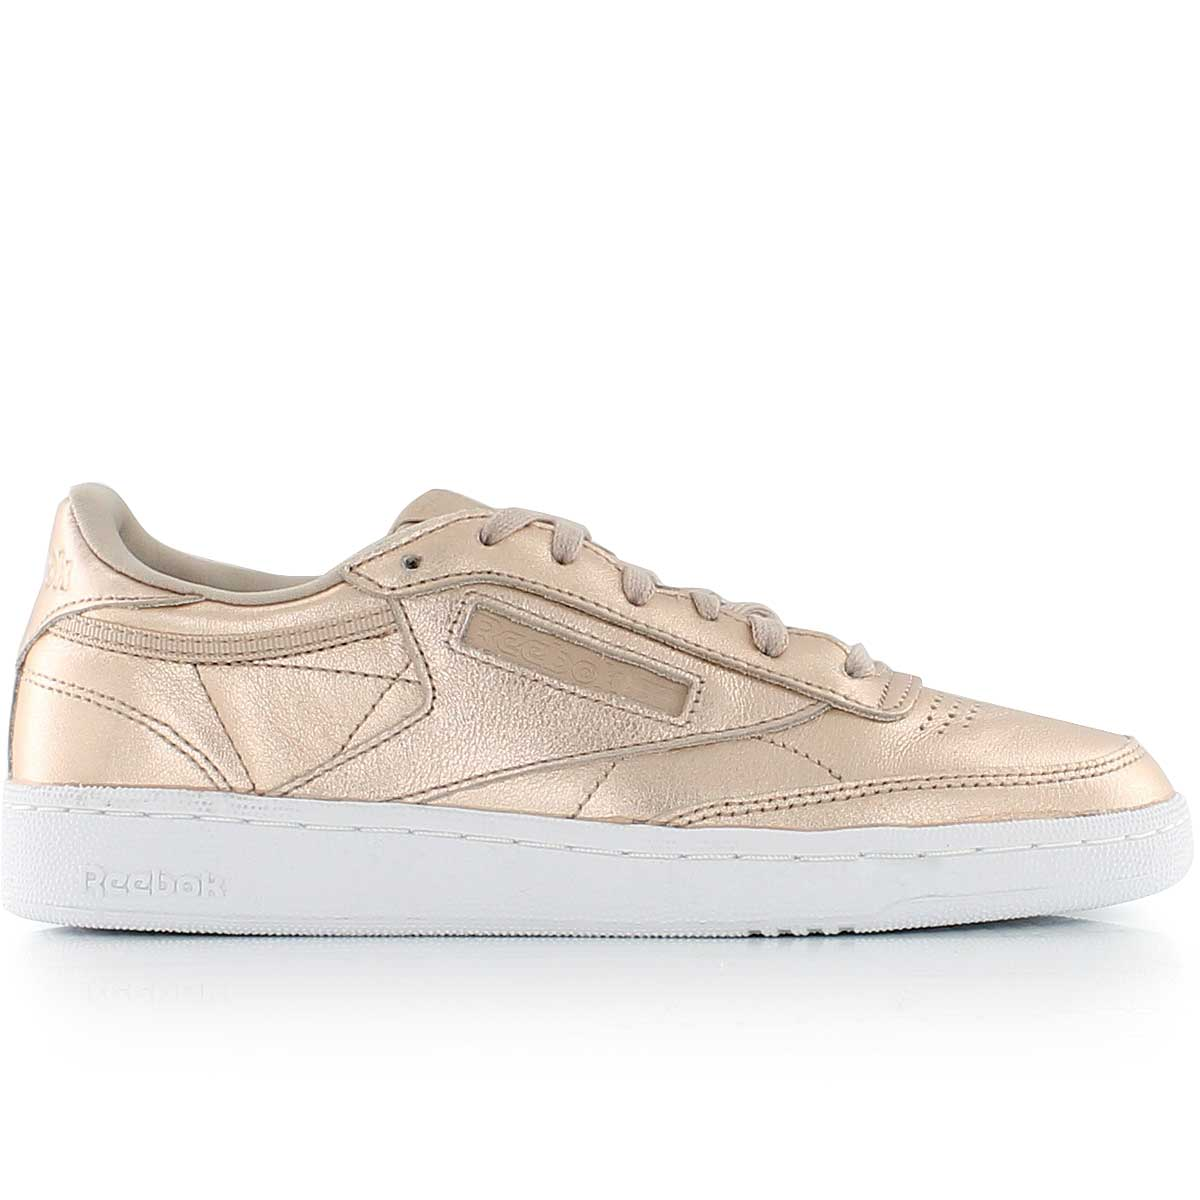 reebok club c 85 womens